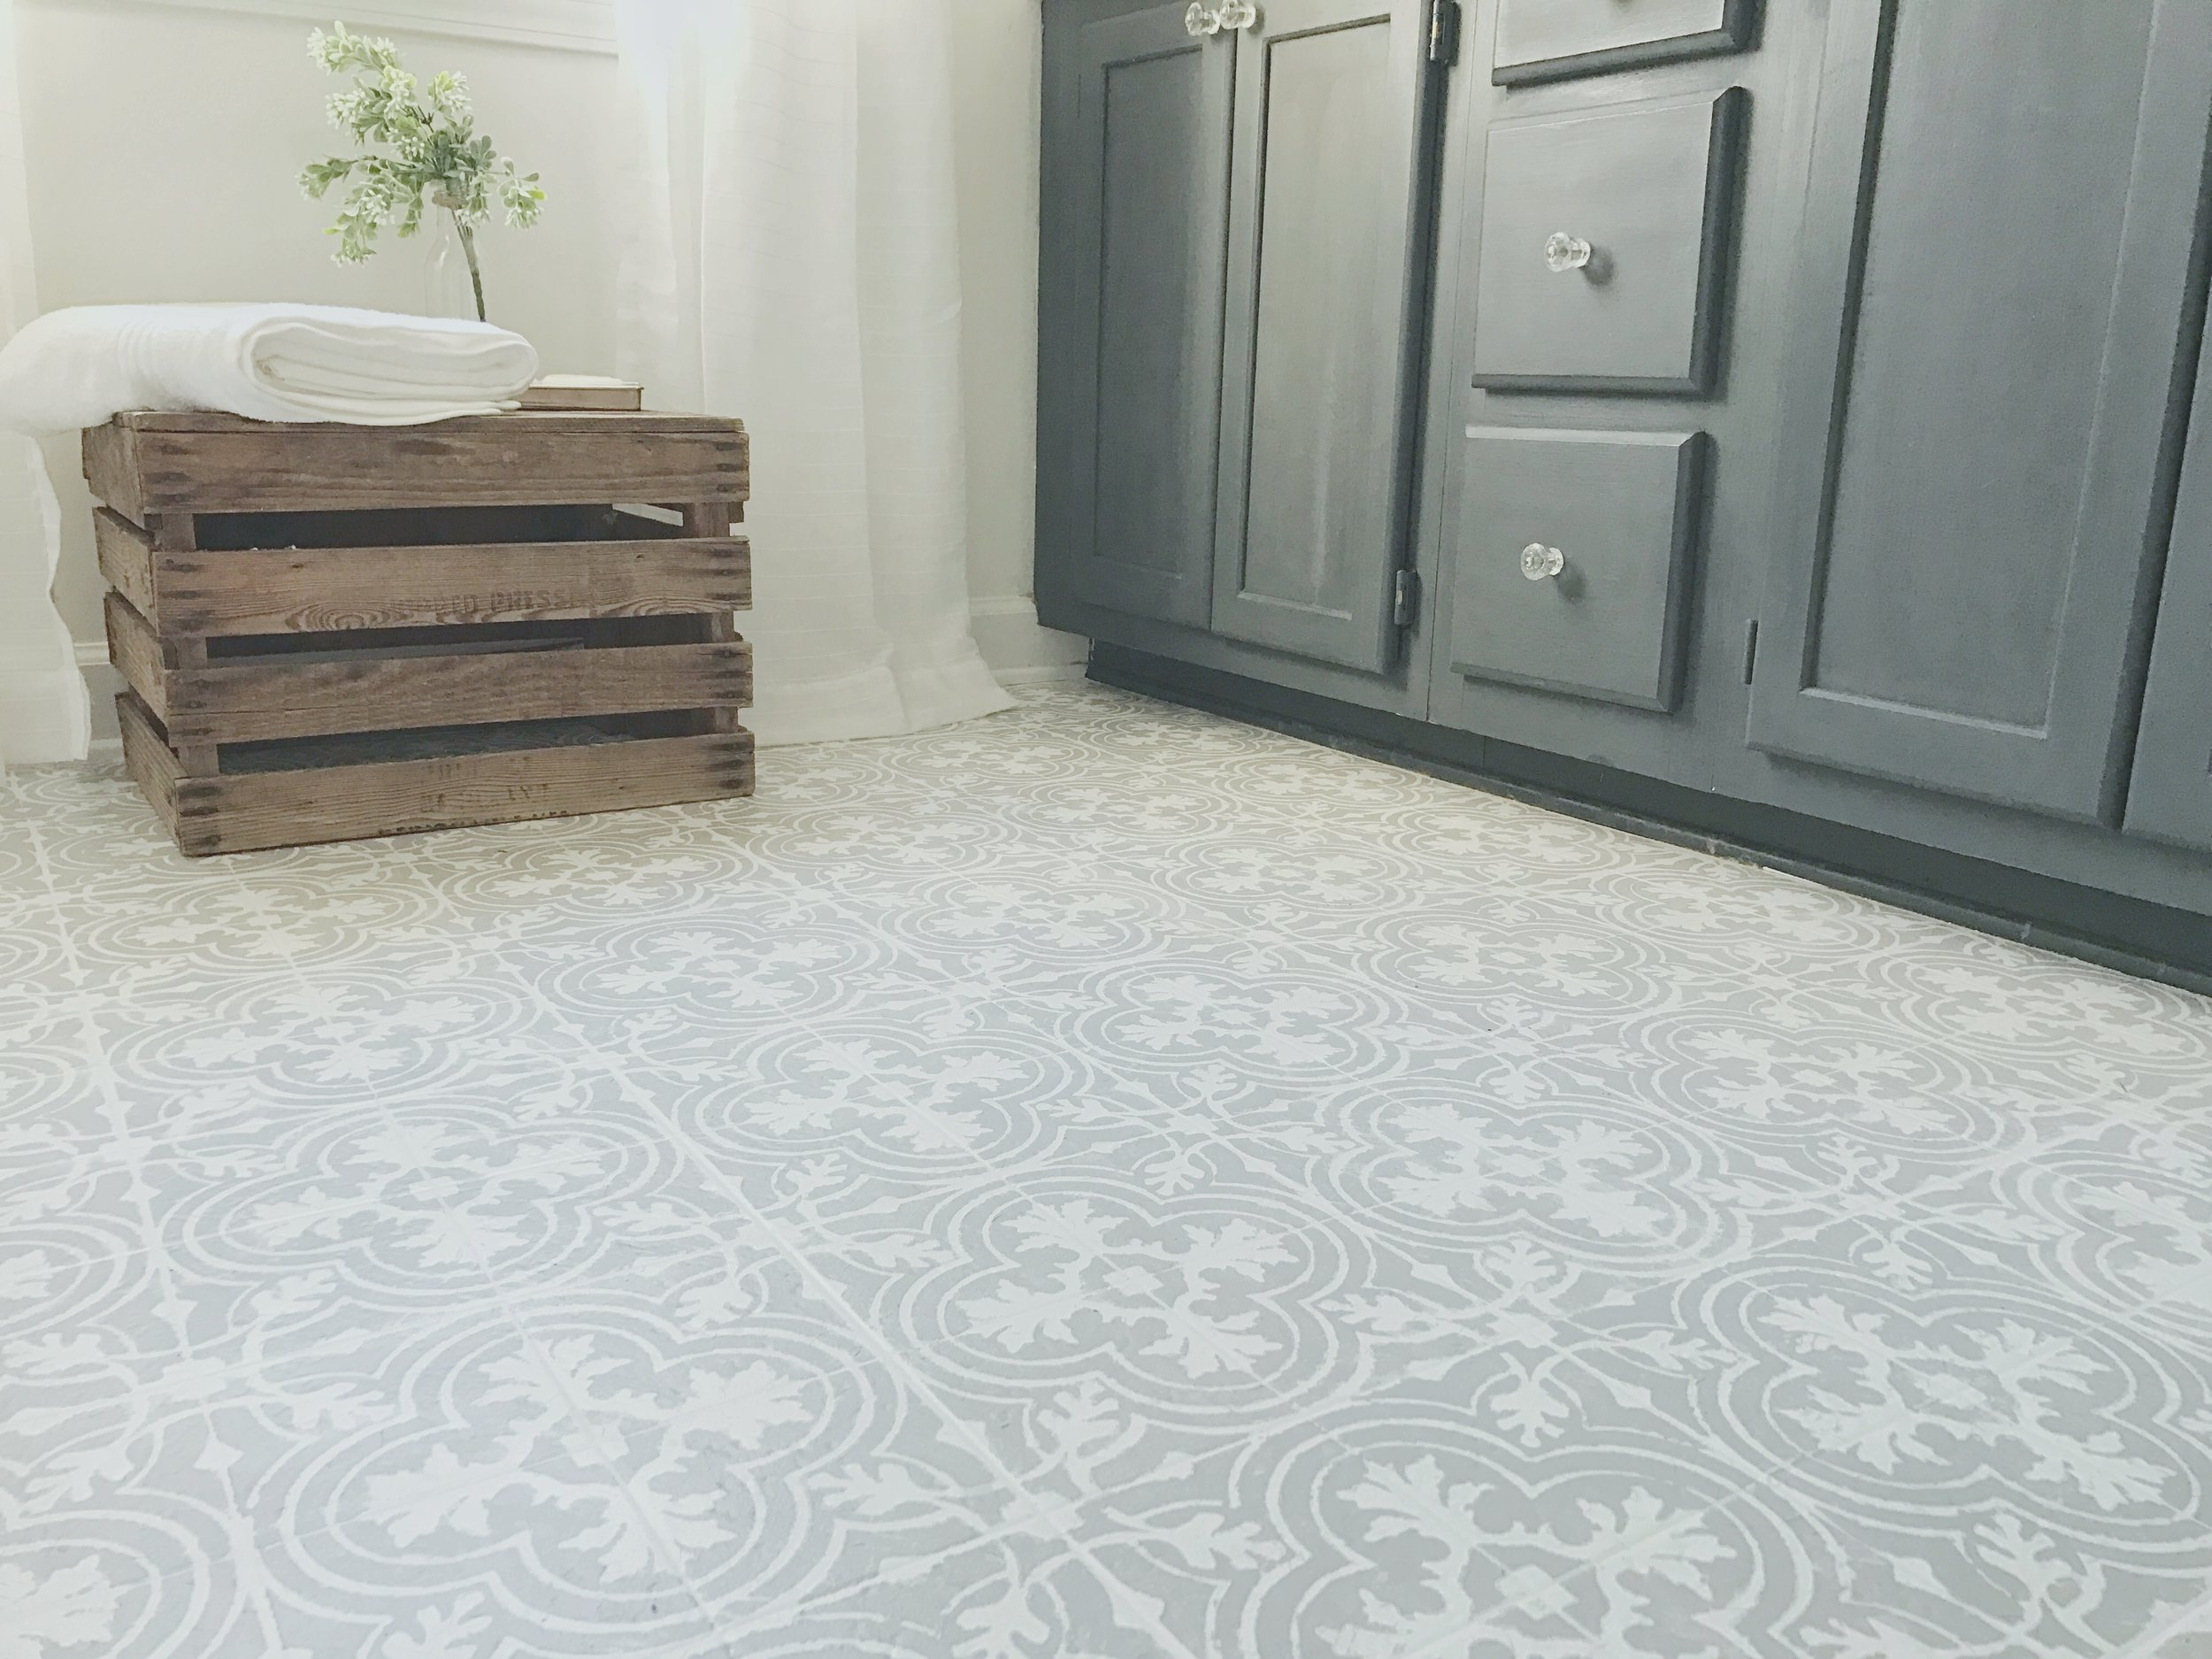 How to Paint Your Linoleum or Tile Floors to Look Like Patterned Cement Tiles- Budget Friendly DIY Tutorial with free Stencil Download